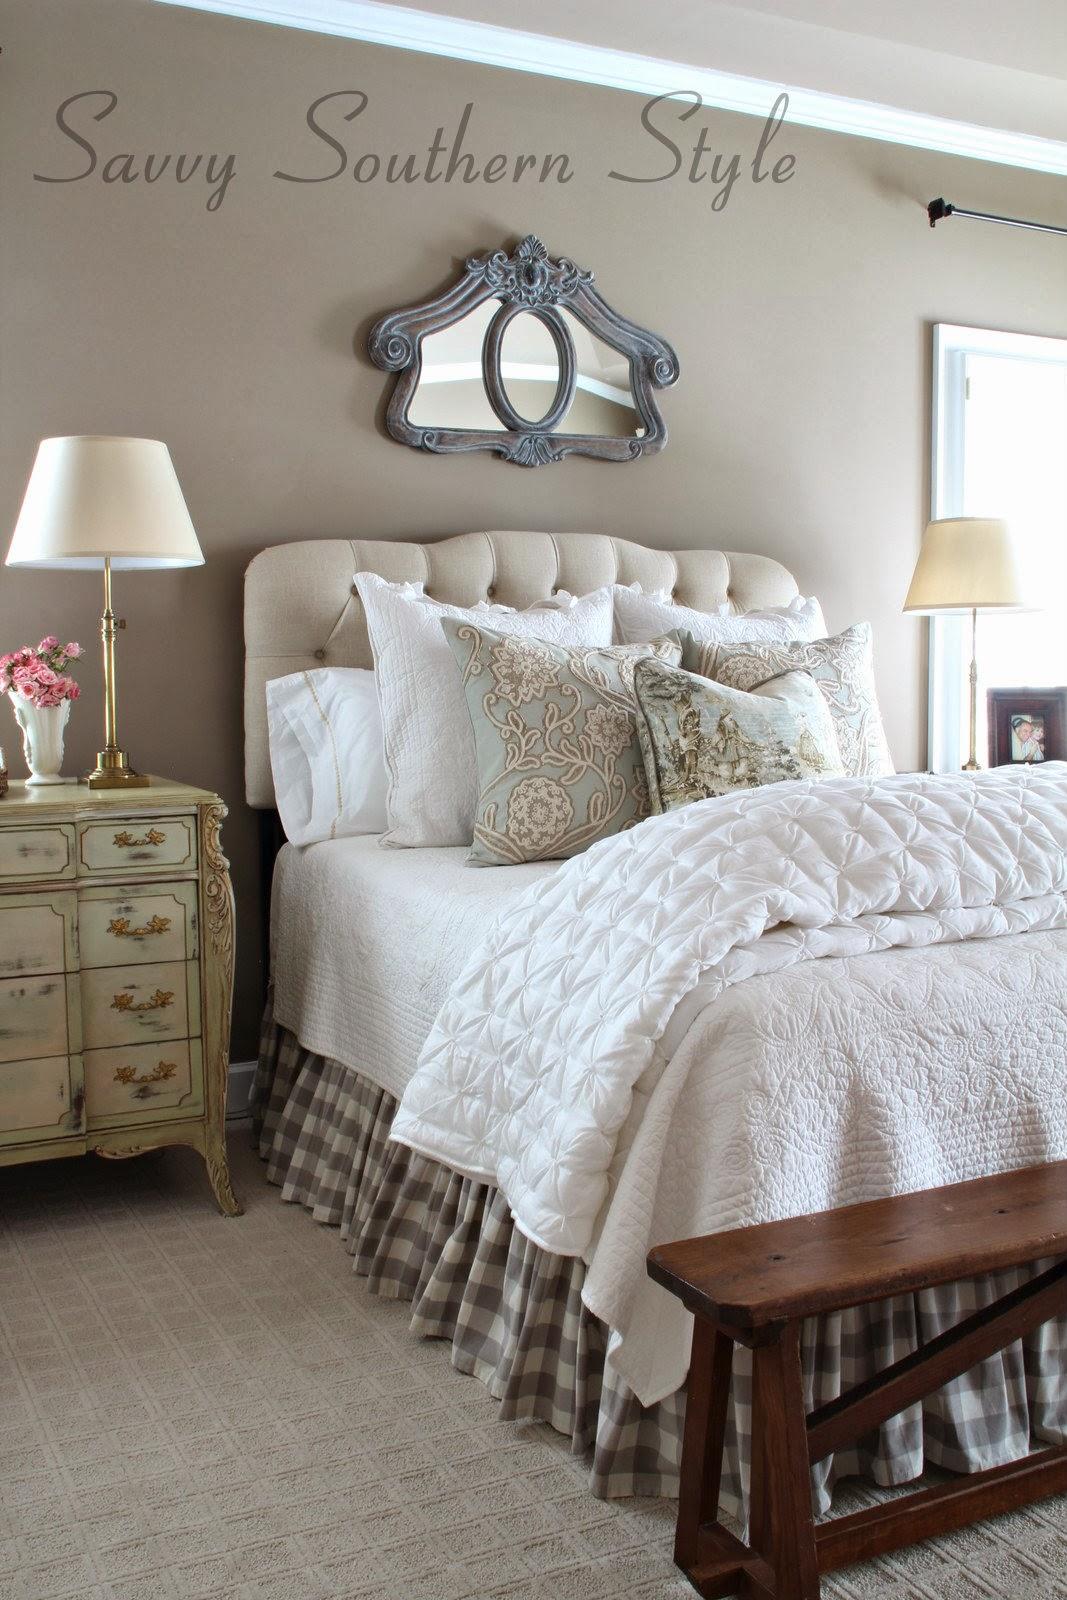 Savvy Southern Style Answering Questions About My Bed and a How To